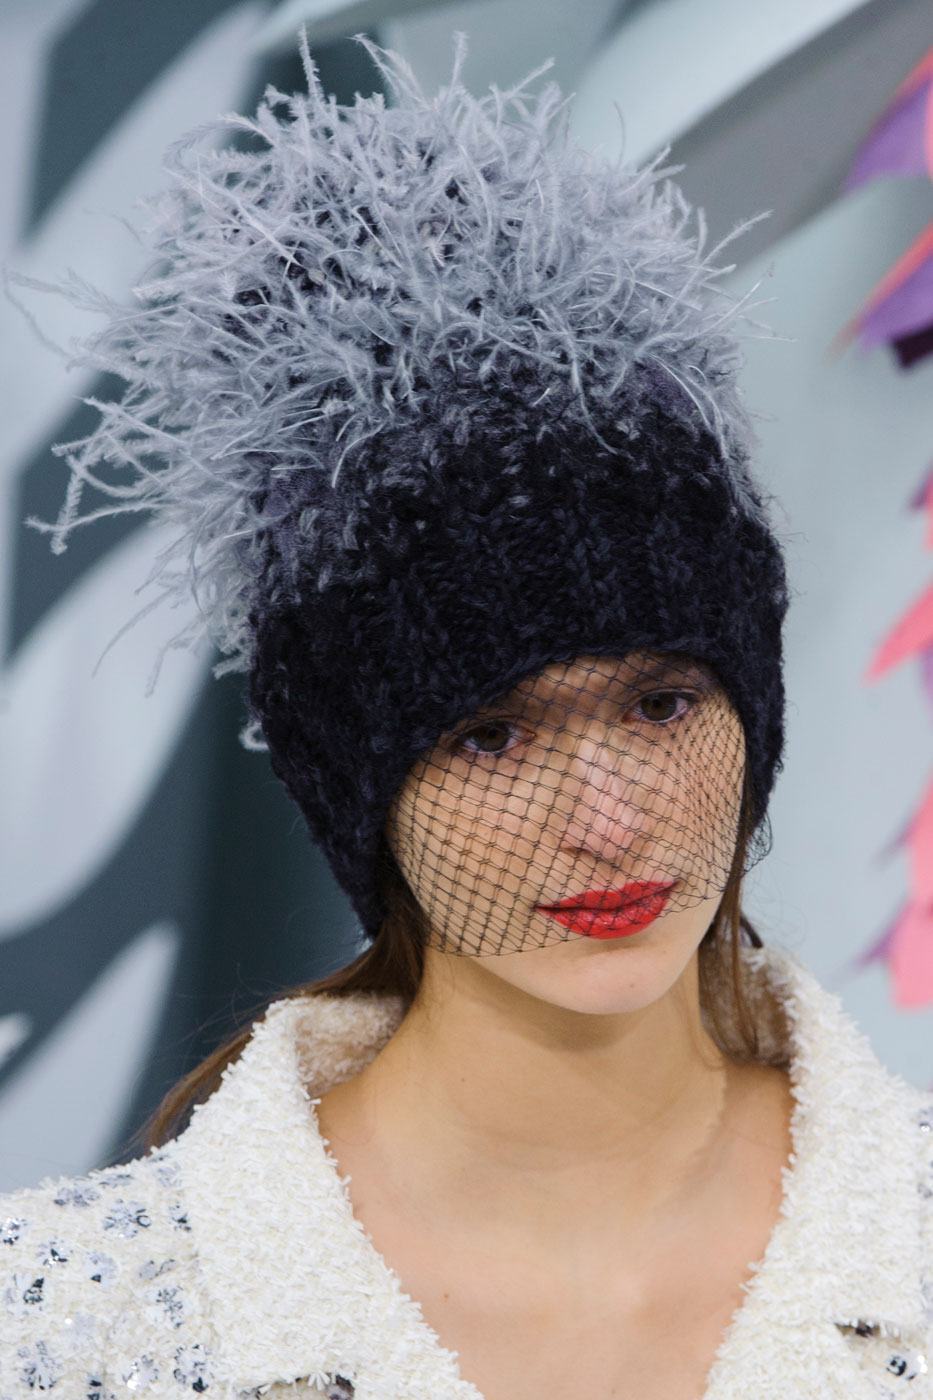 Chanel-fashion-runway-show-close-ups-haute-couture-paris-spring-summer-2015-the-impression-041